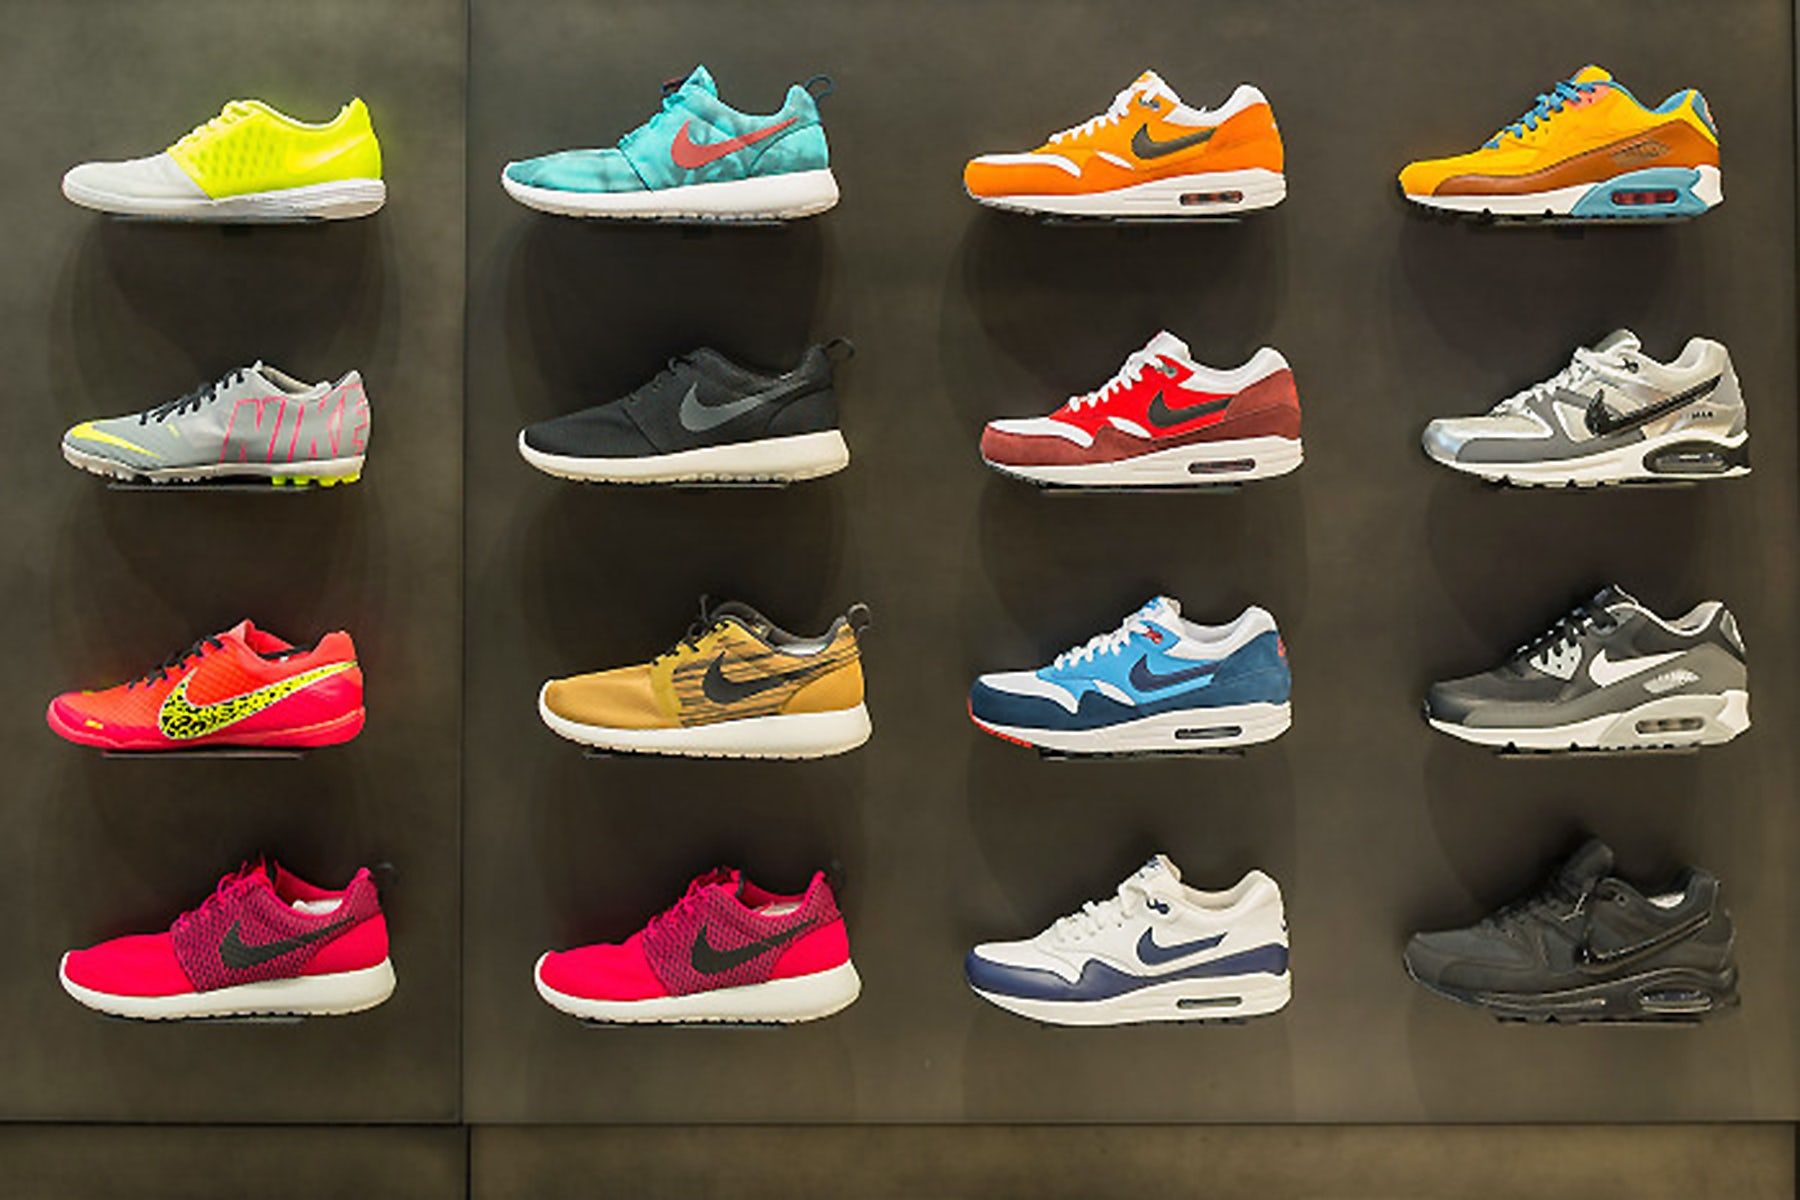 Chinese Nike Shoemaker Disrupted After